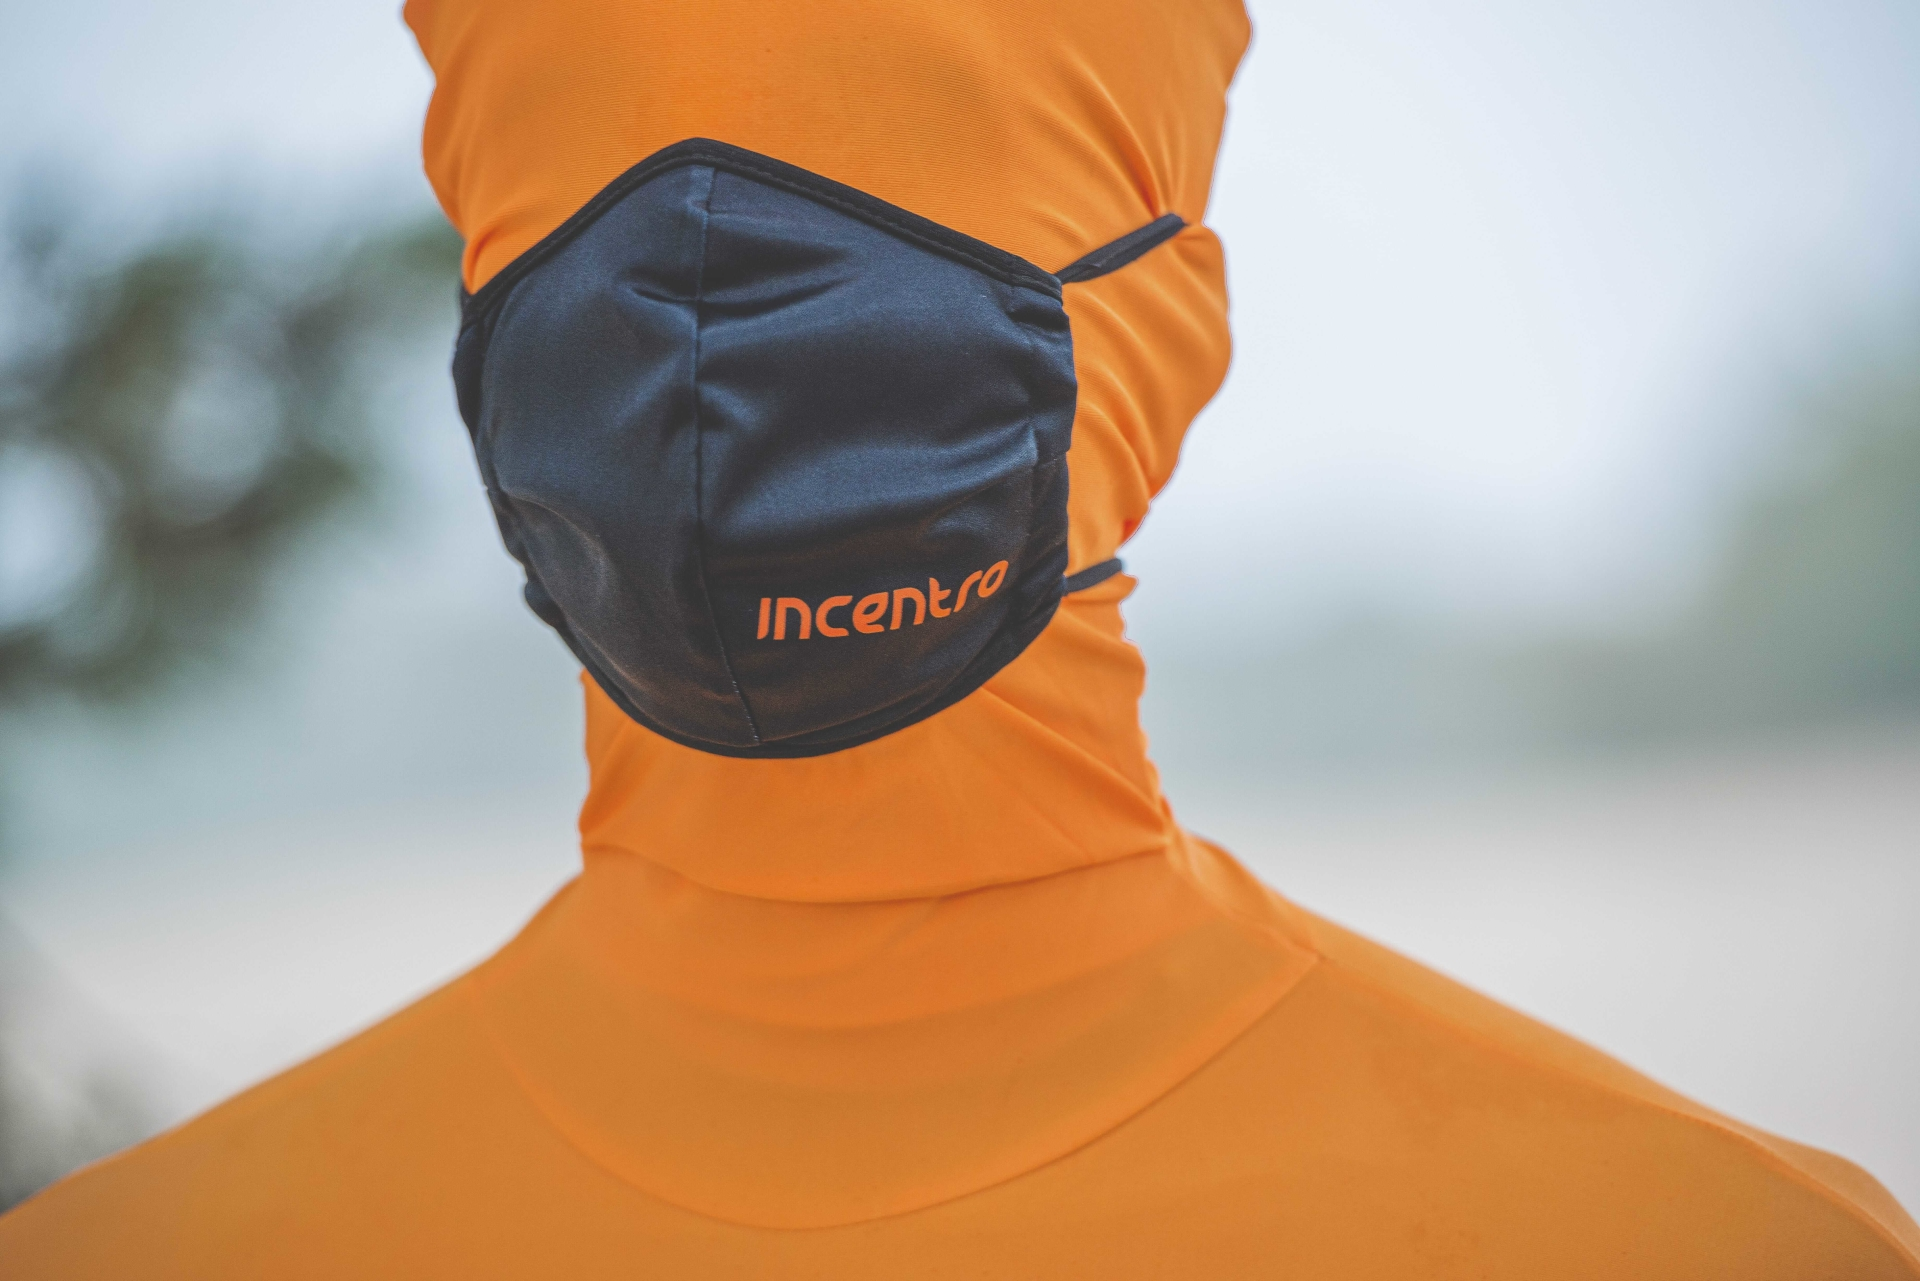 incentro mask protection orange guy